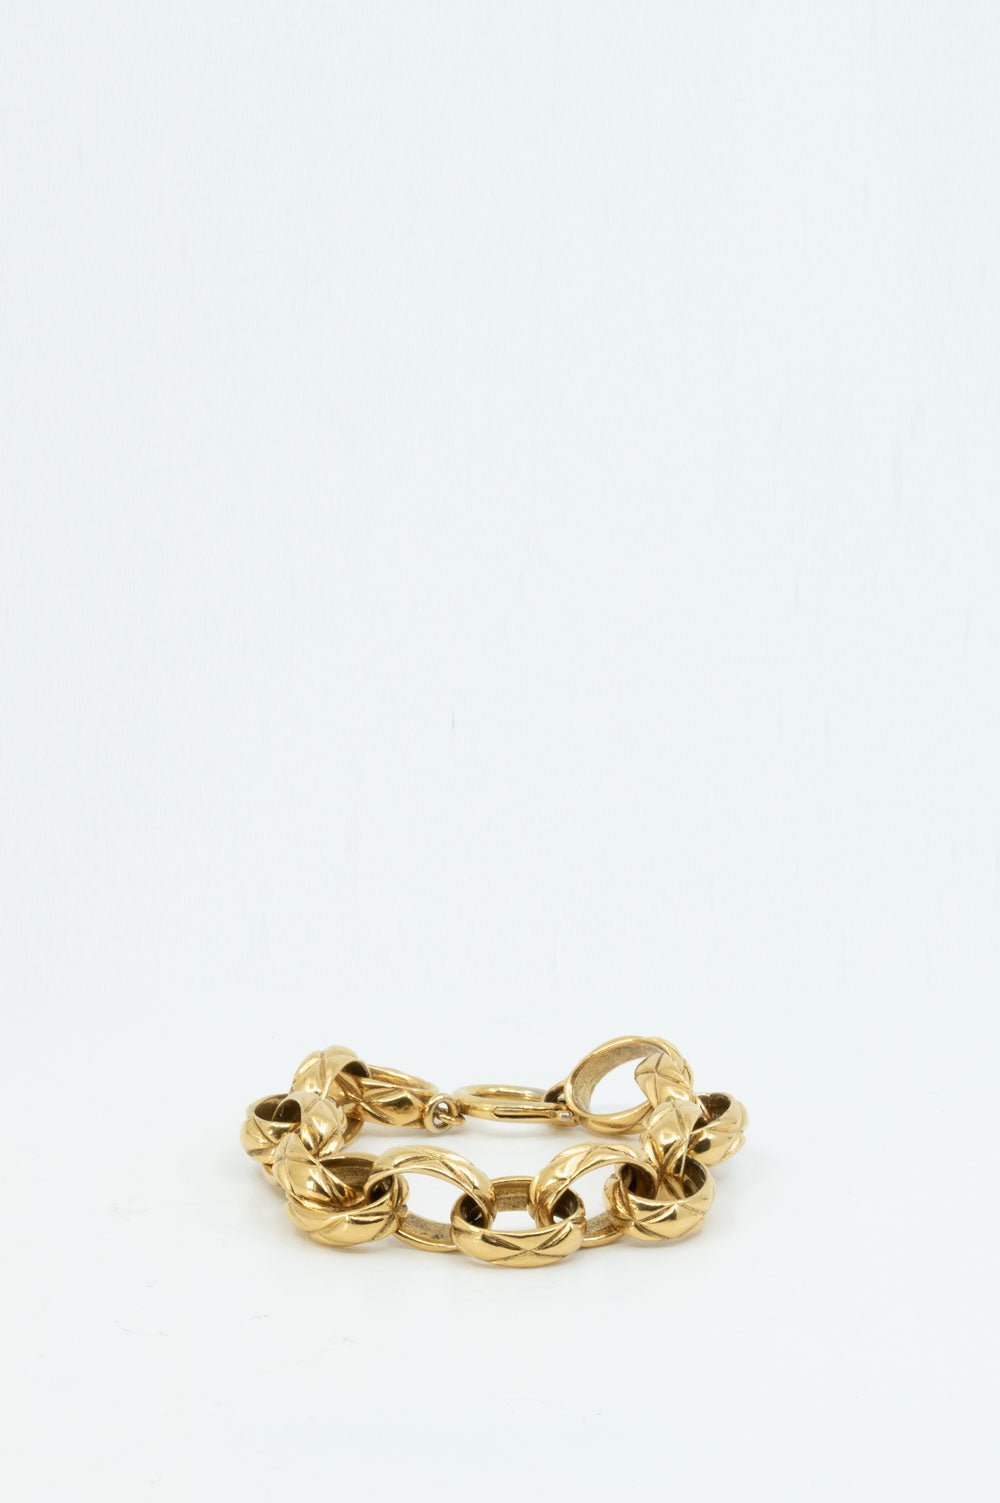 Chanel Vintage Bracelet in gold